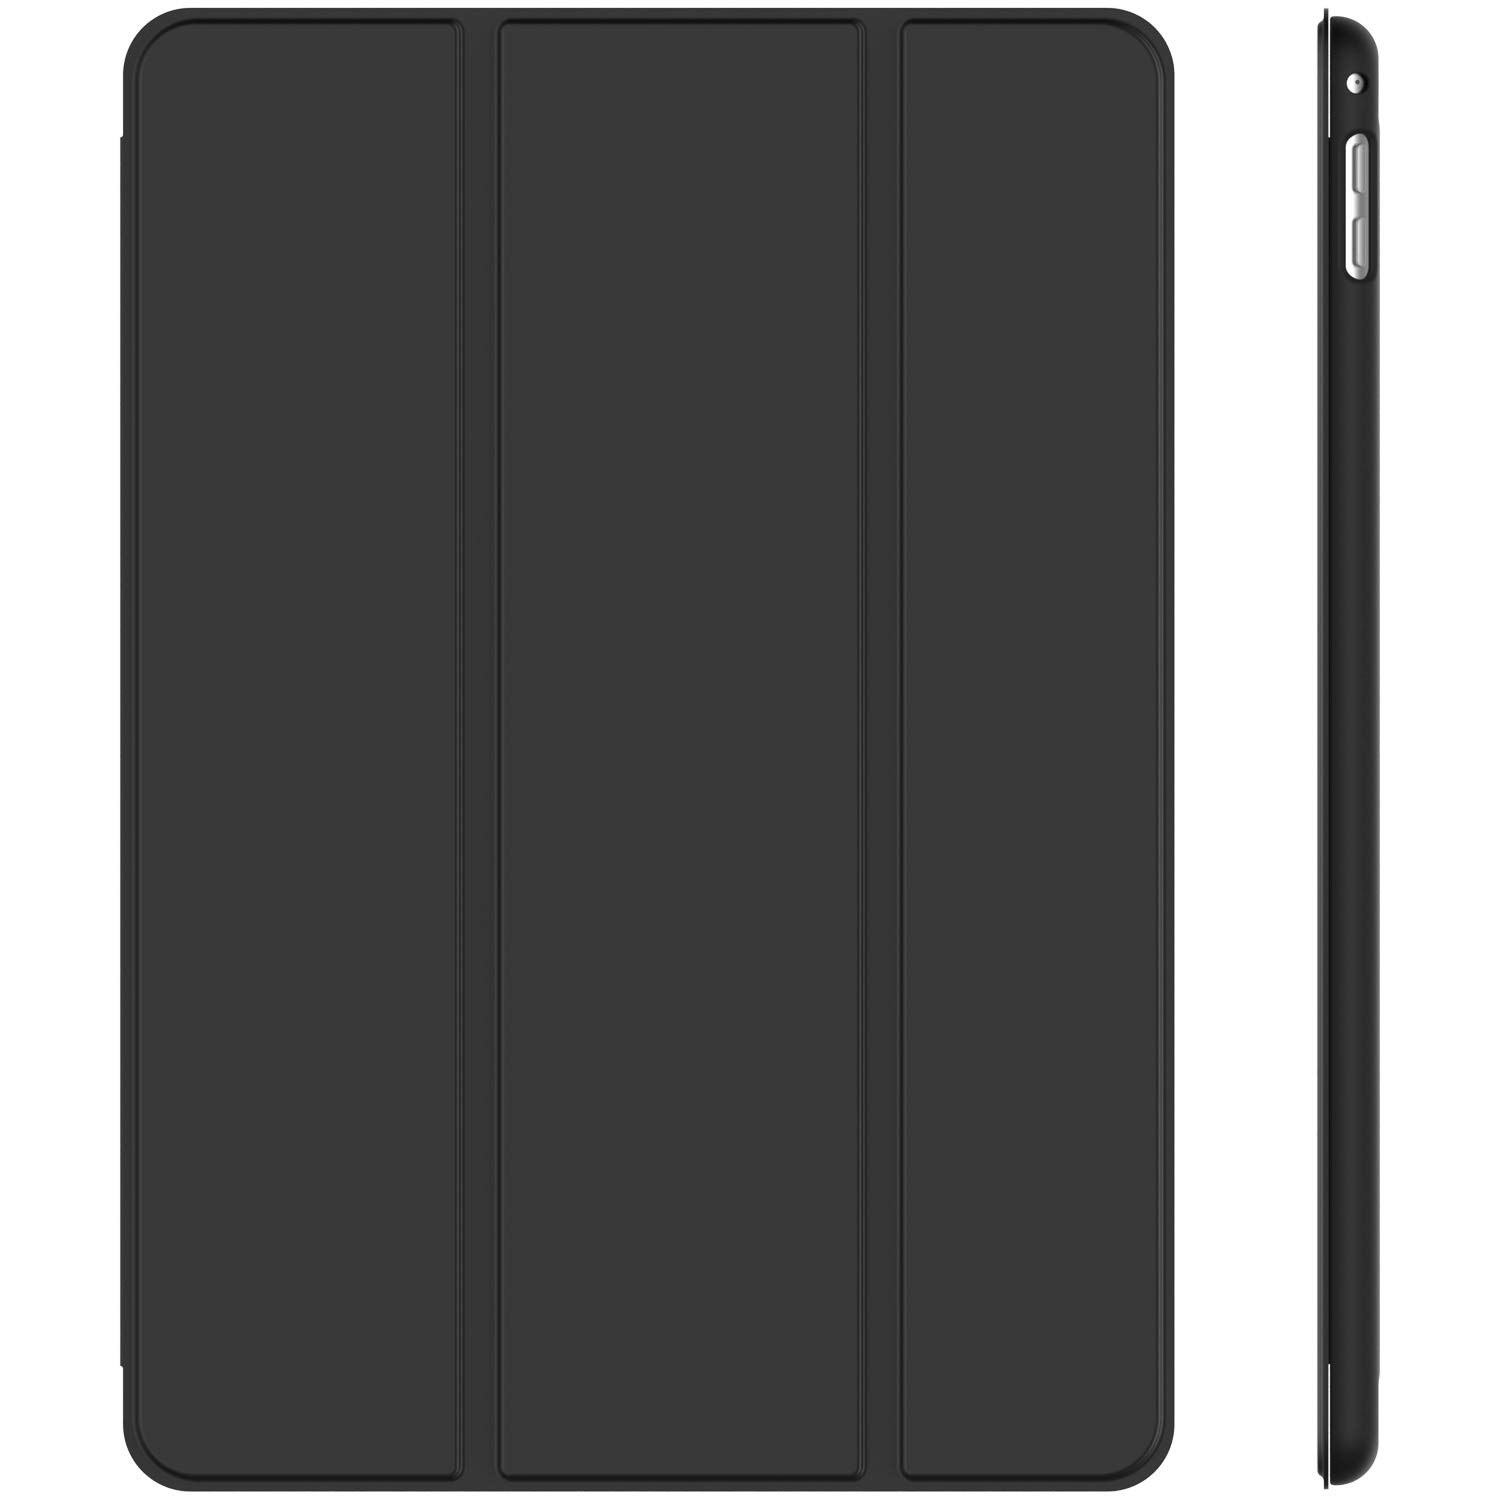 JETech Case for Apple iPad Mini 4, Smart Cover with Auto Sleep/Wake, Black